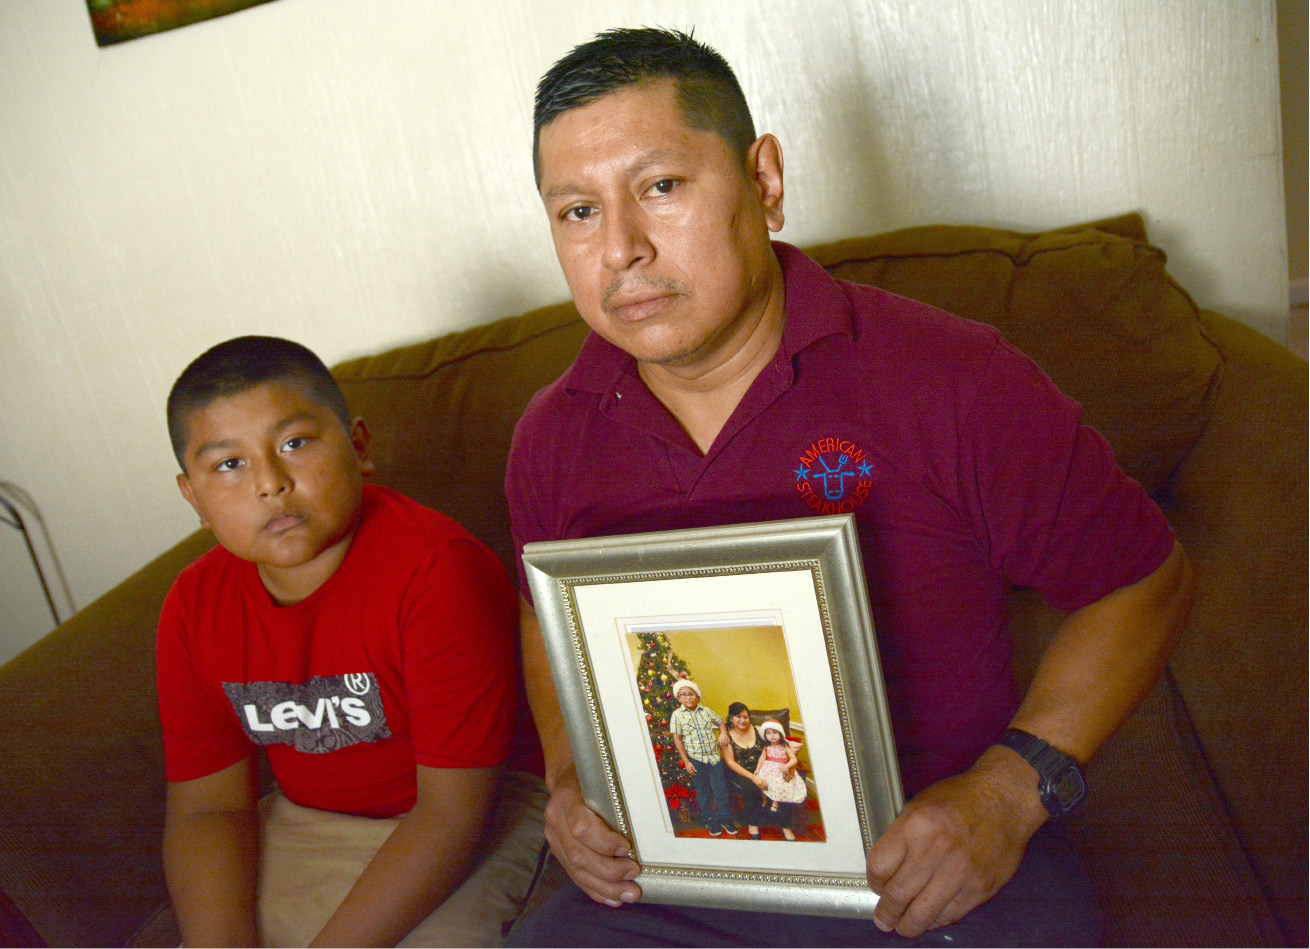 Meriden resident Cesar Quilligana holds a photo of his wife, Rosa Chabla, who was recently ordered by ICE to leave the country. His son, Jerry, sits next to him. | Bryan Lipiner, Record-Journal